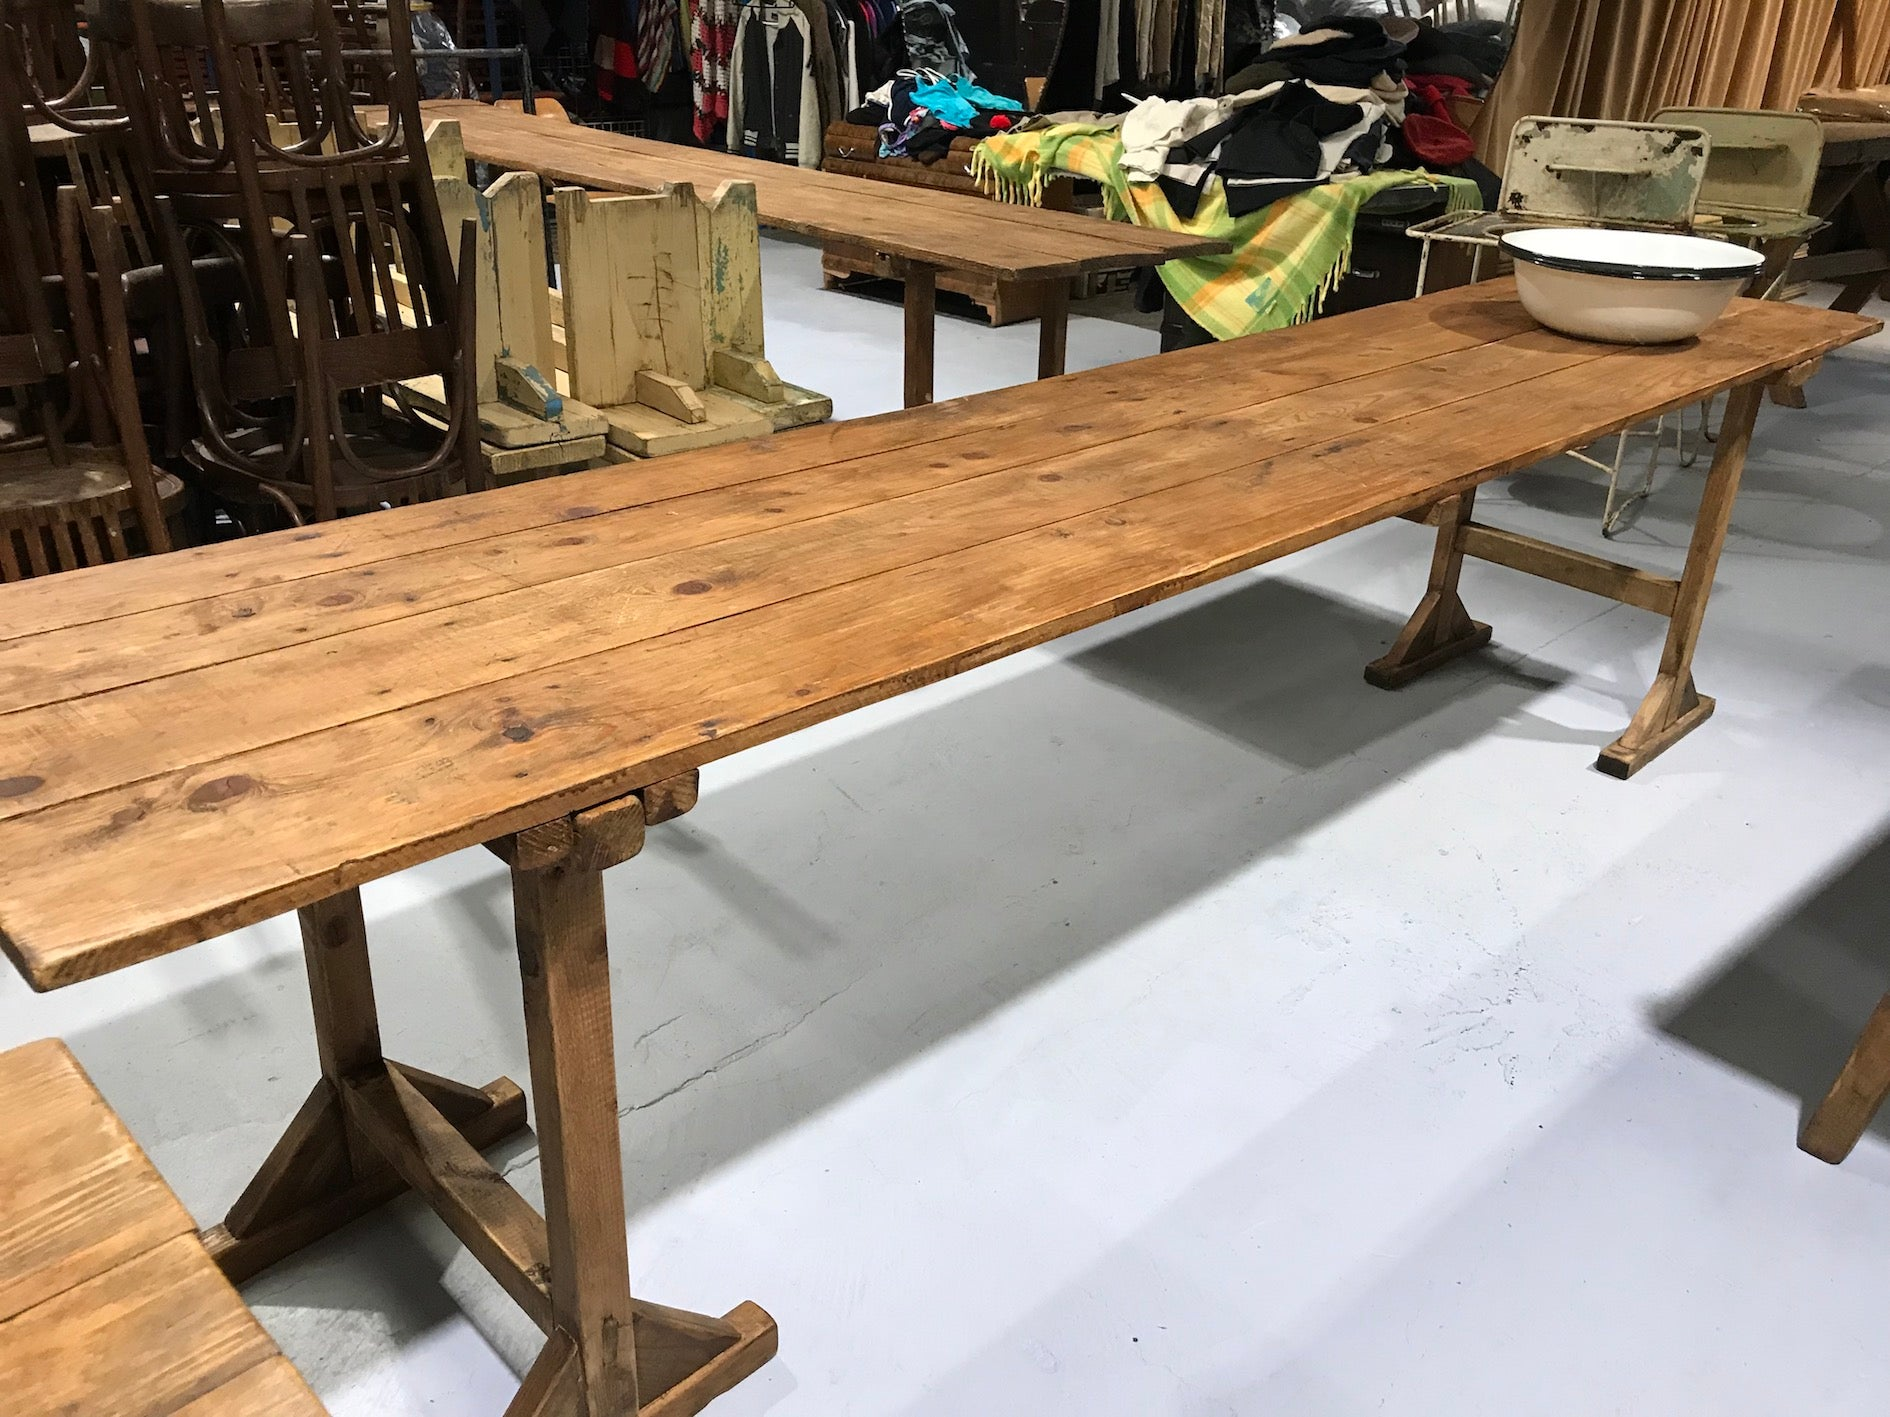 Vintage industrial European kitchen farmhouse dining table 3.1 long #1961